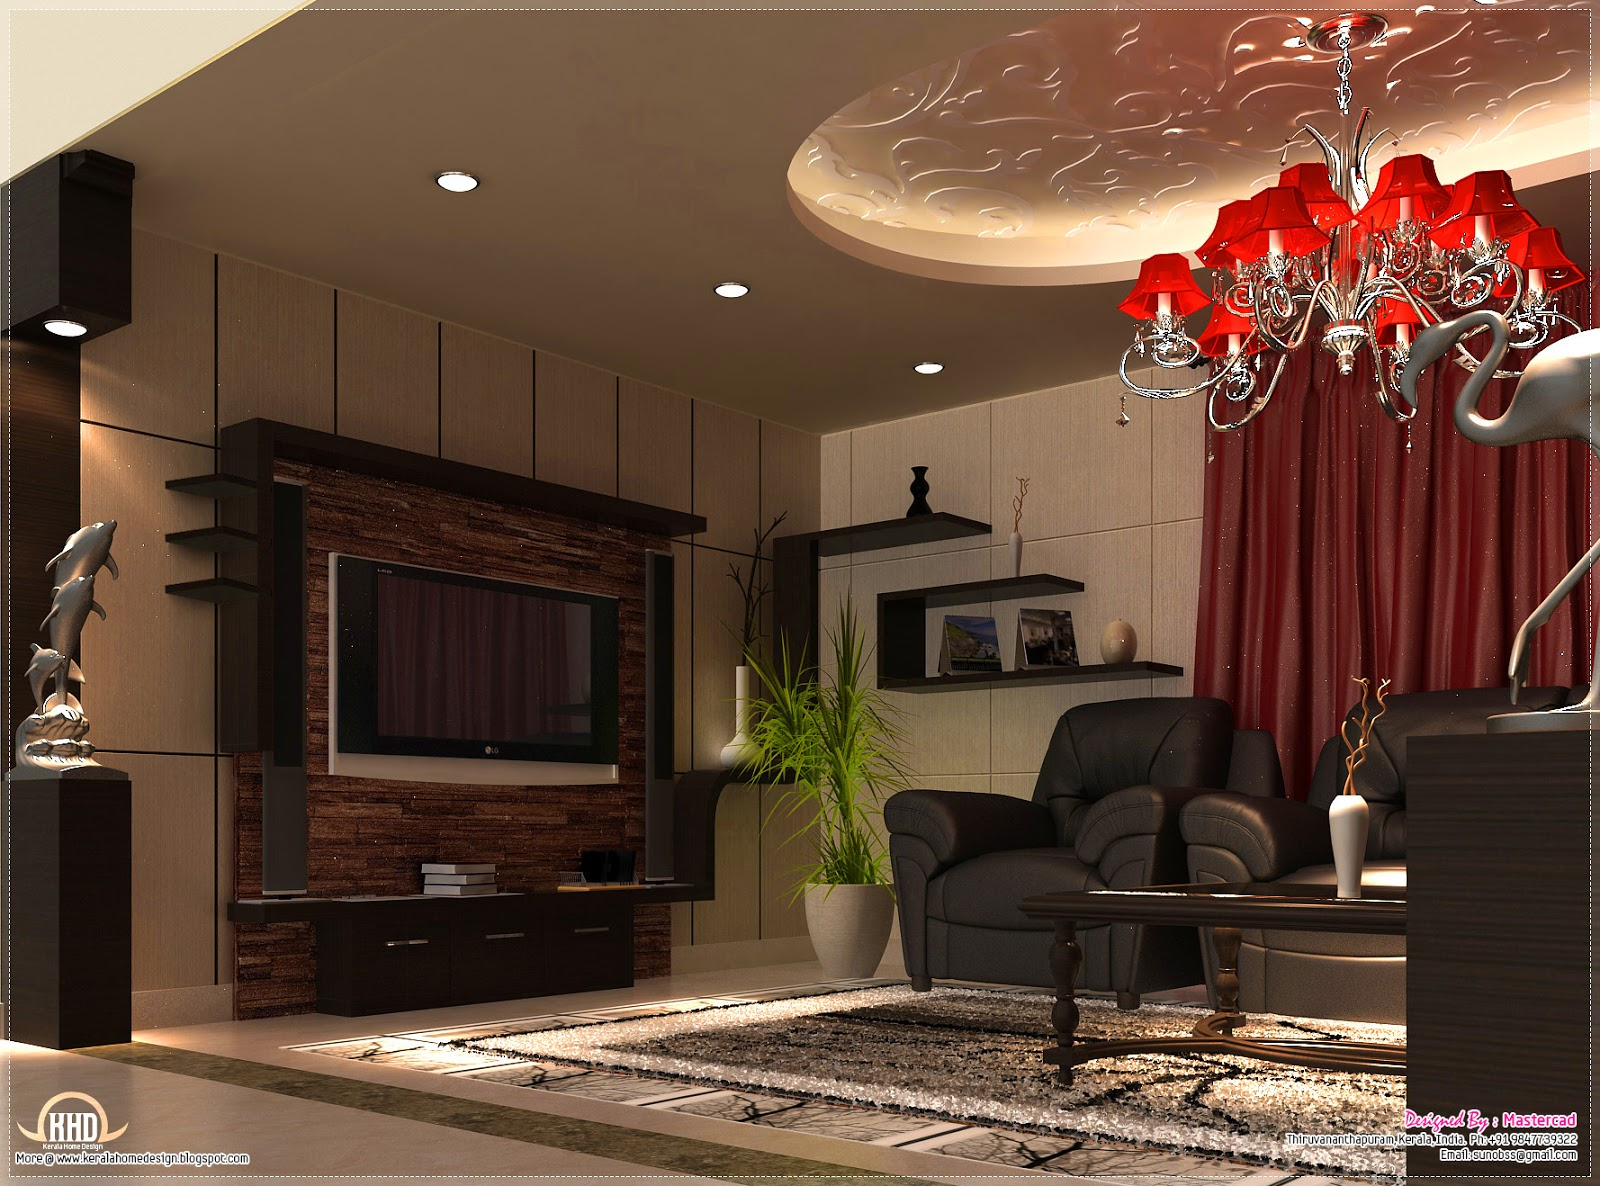 Interior design ideas kerala home design and floor plans for Interior designs new homes